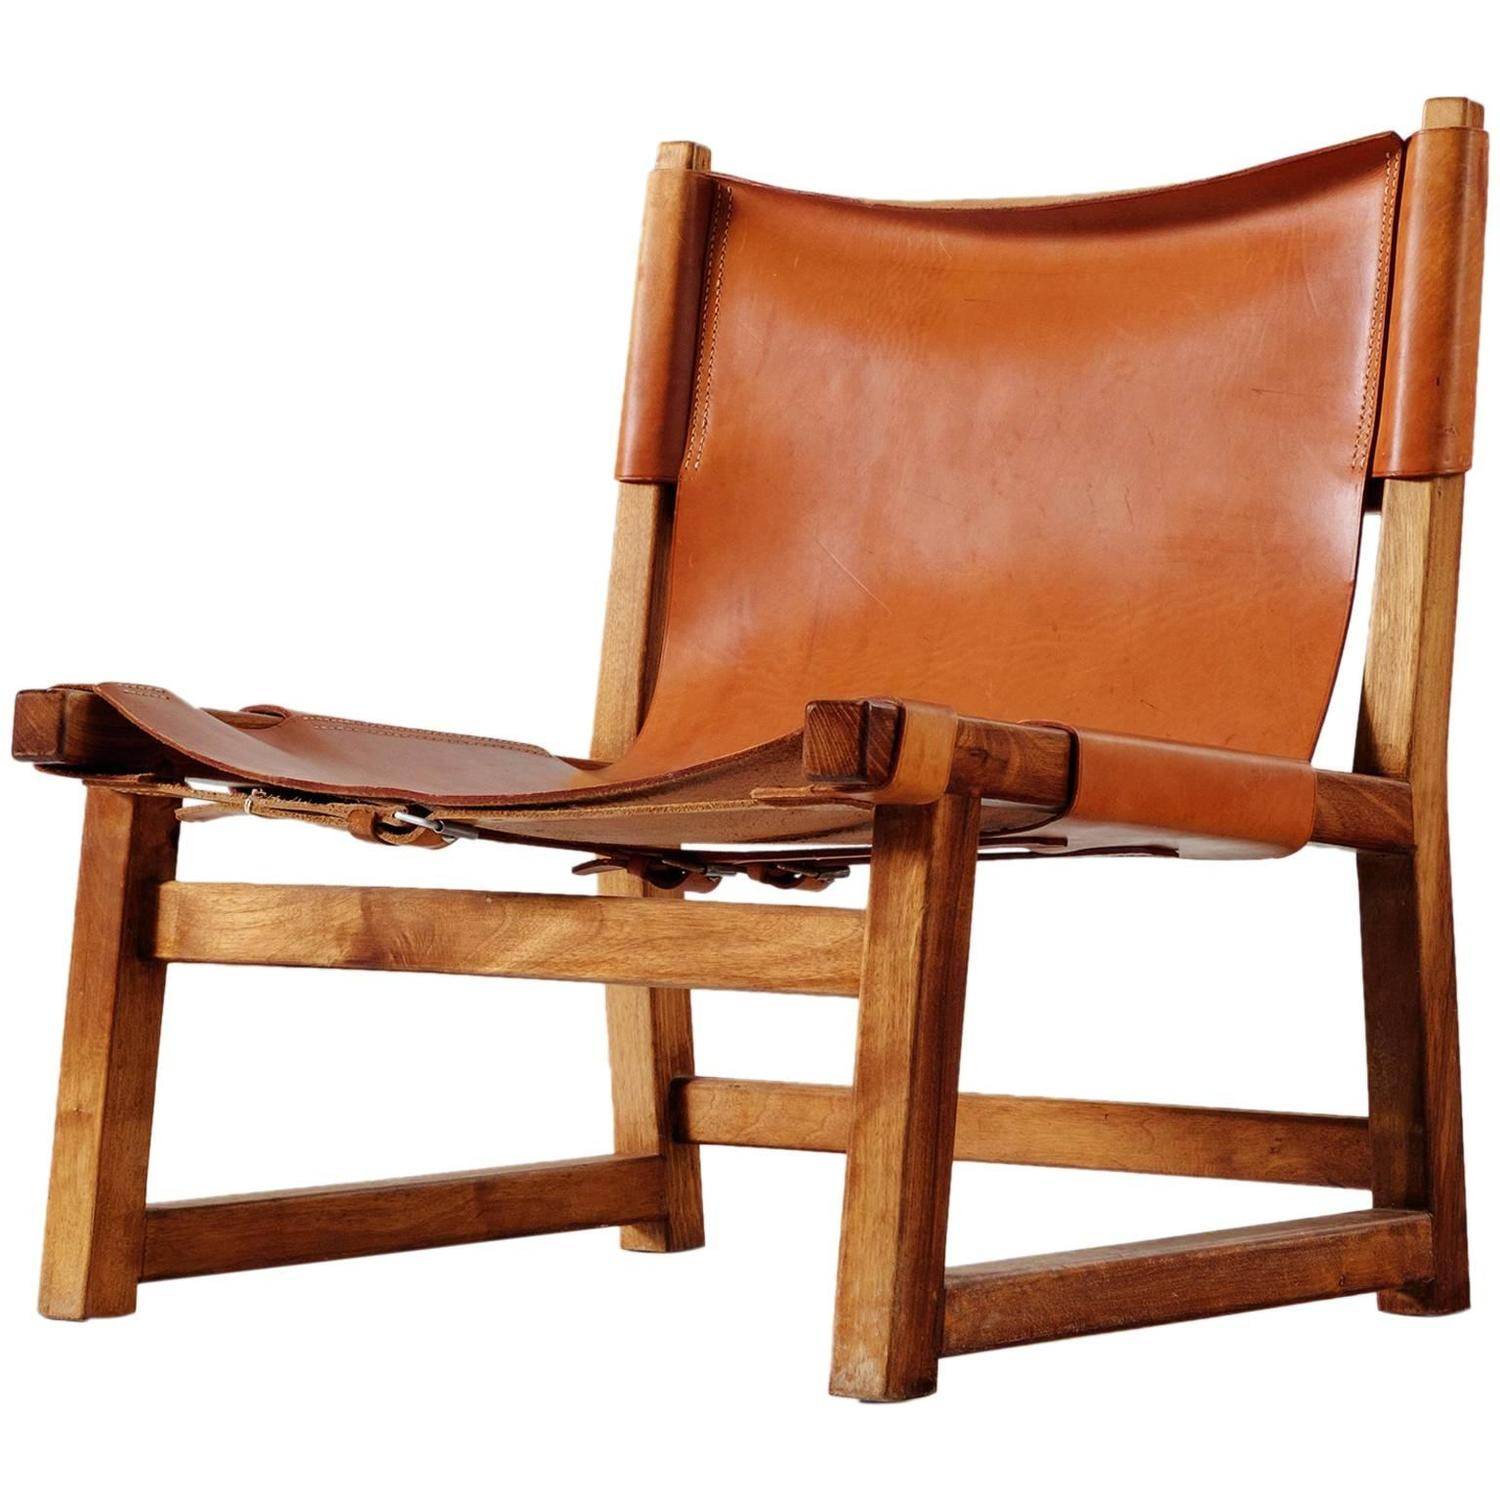 swedish leather recliner chairs rv couches and scandinavian hunting chair in cognac for sale at